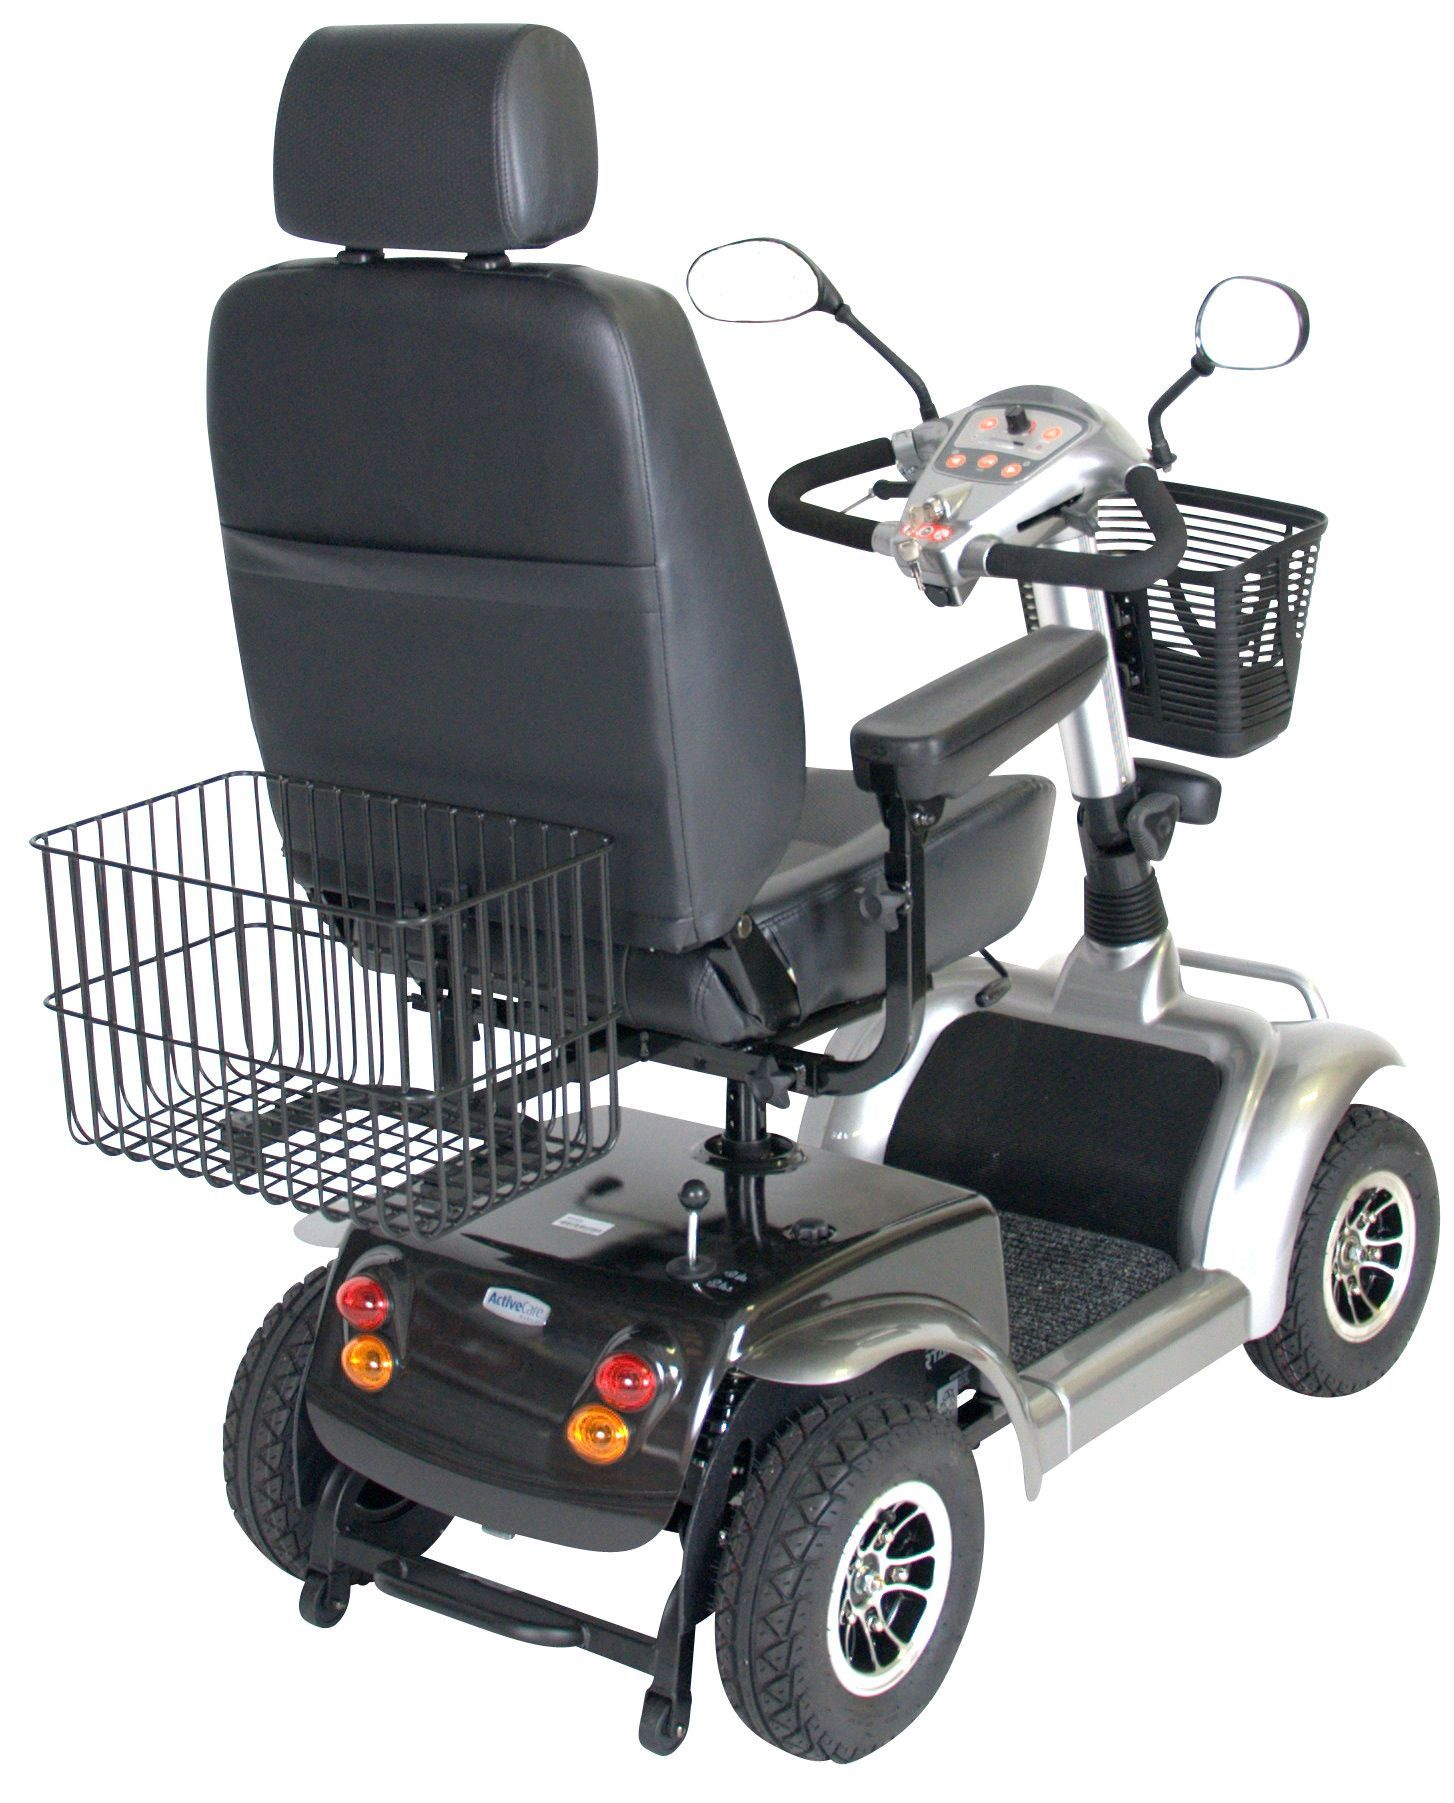 Power Mobility Rear Basket | Accessibility | Powered wheelchair